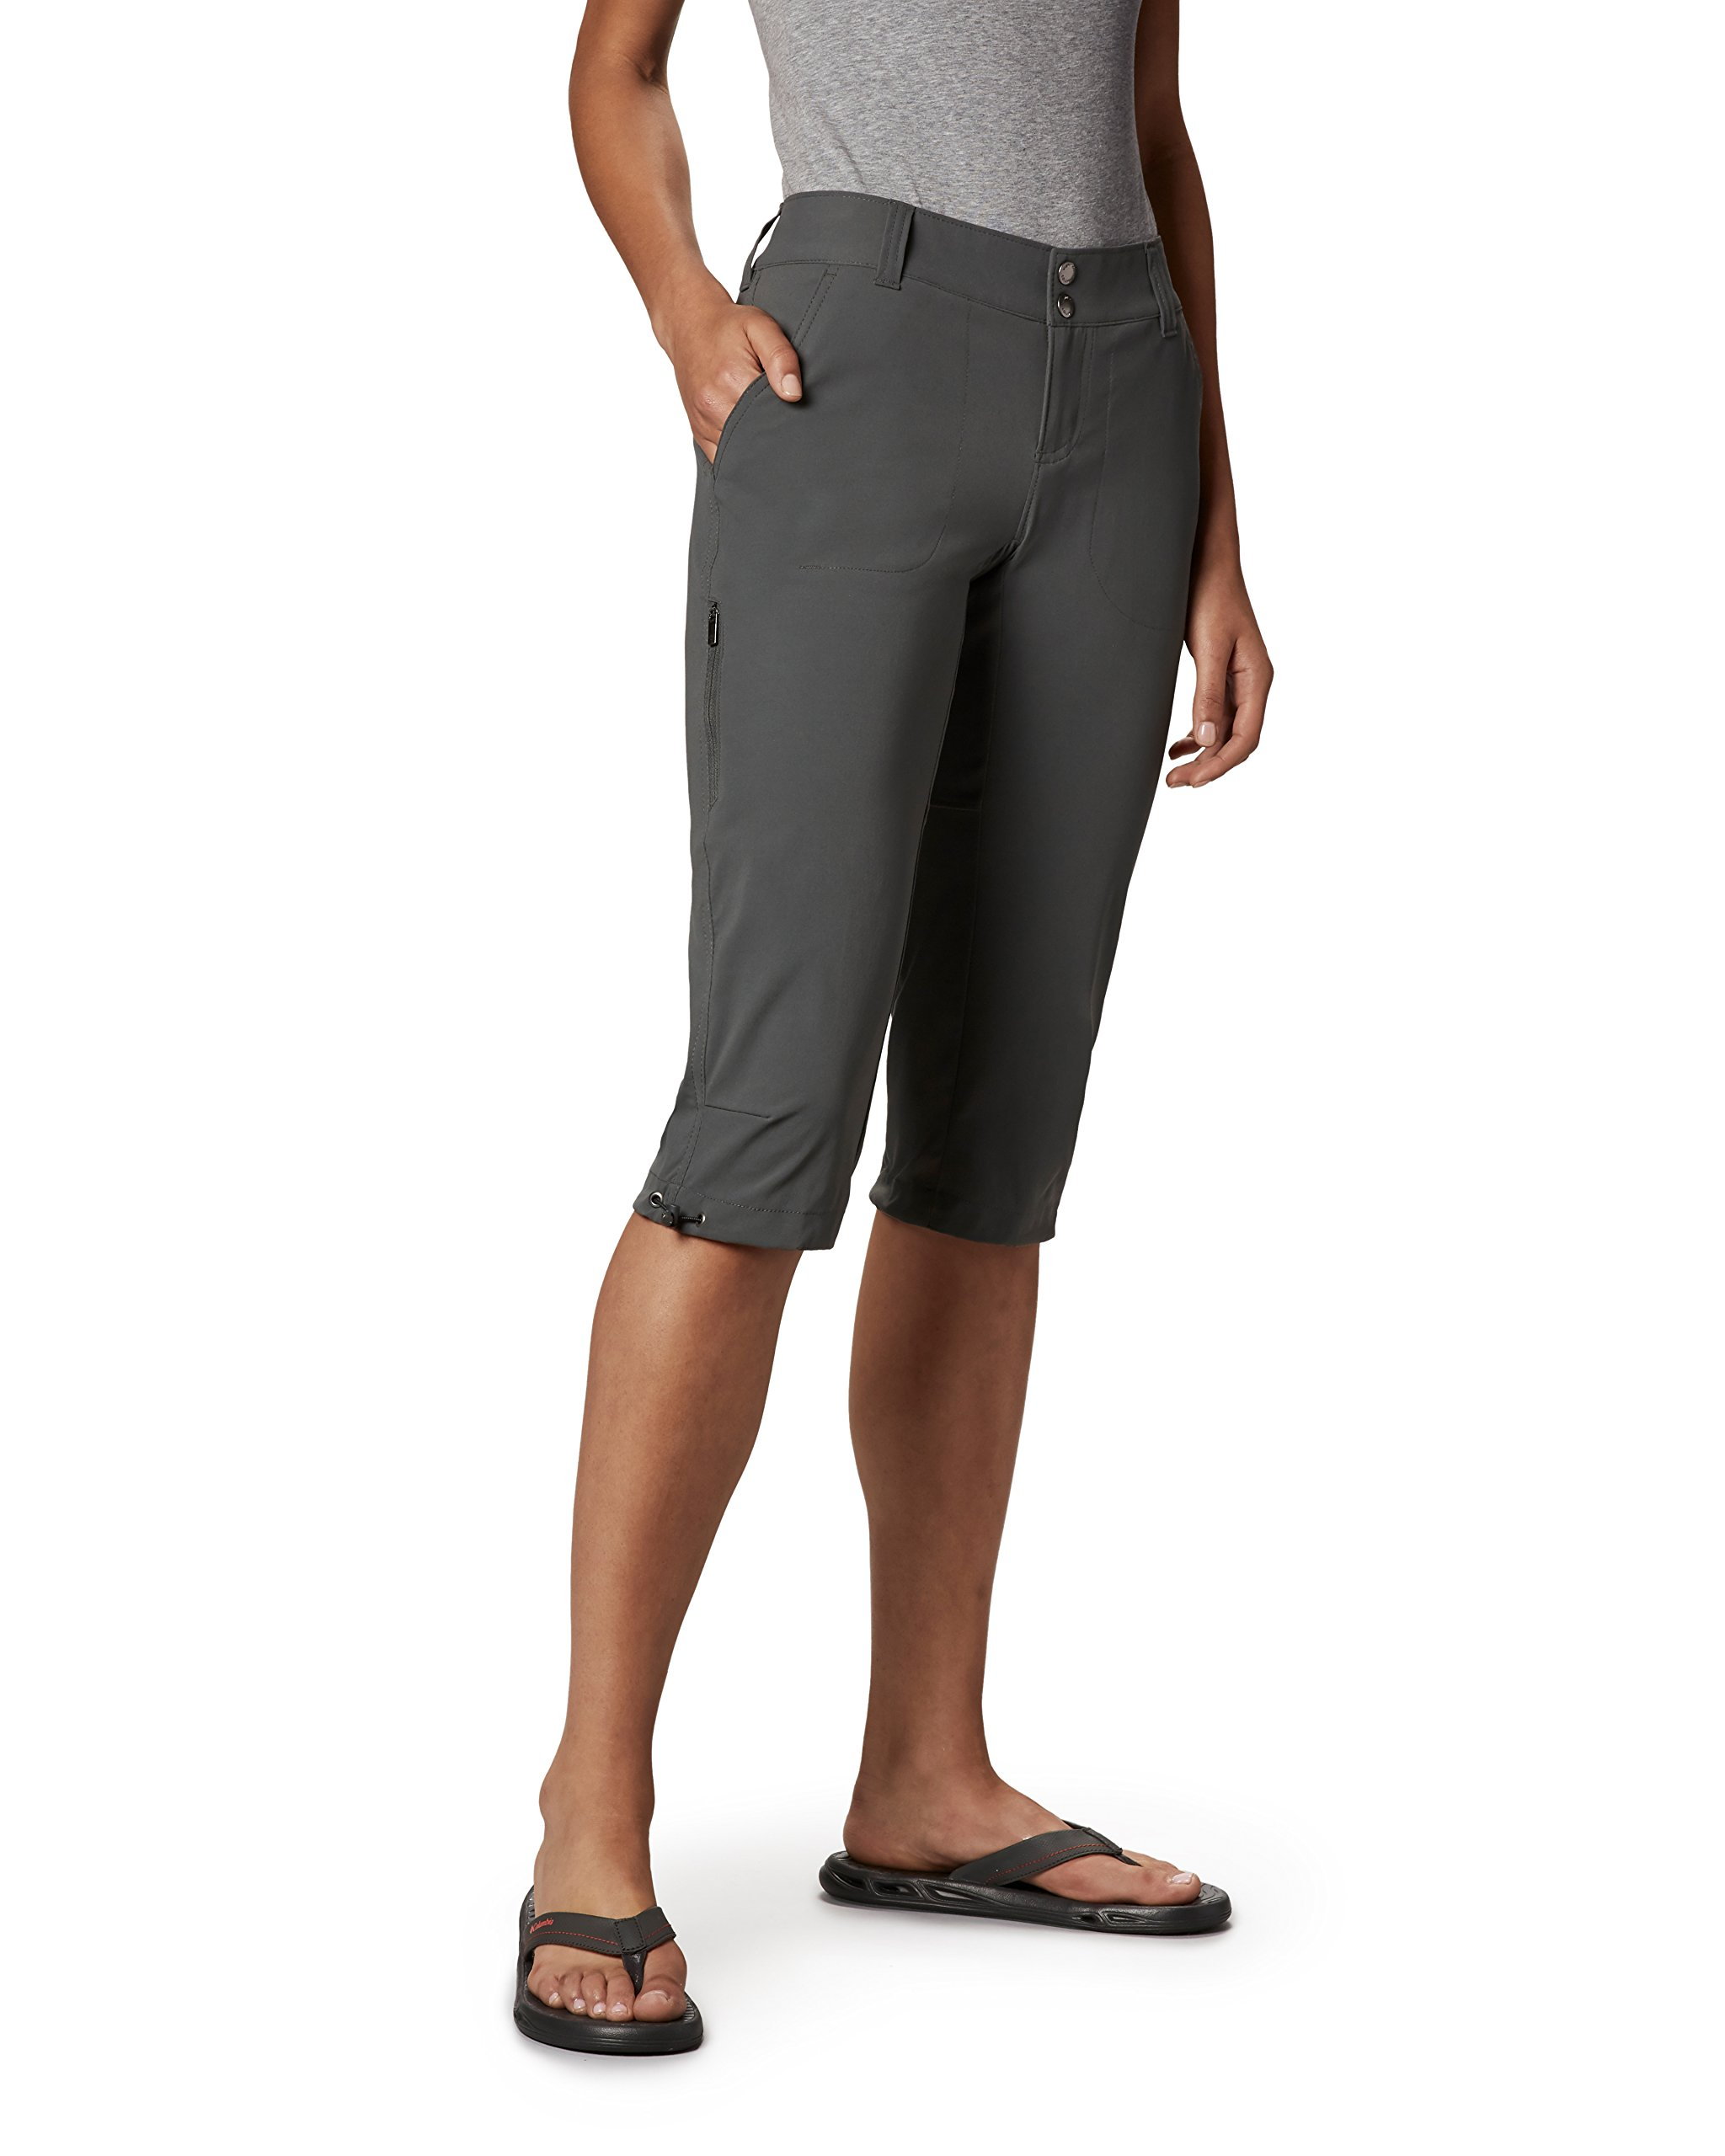 Columbia Women's Saturday Trail II Knee Pant, Water & Stain Resistant,Grill,12 X 18'' inseam by Columbia